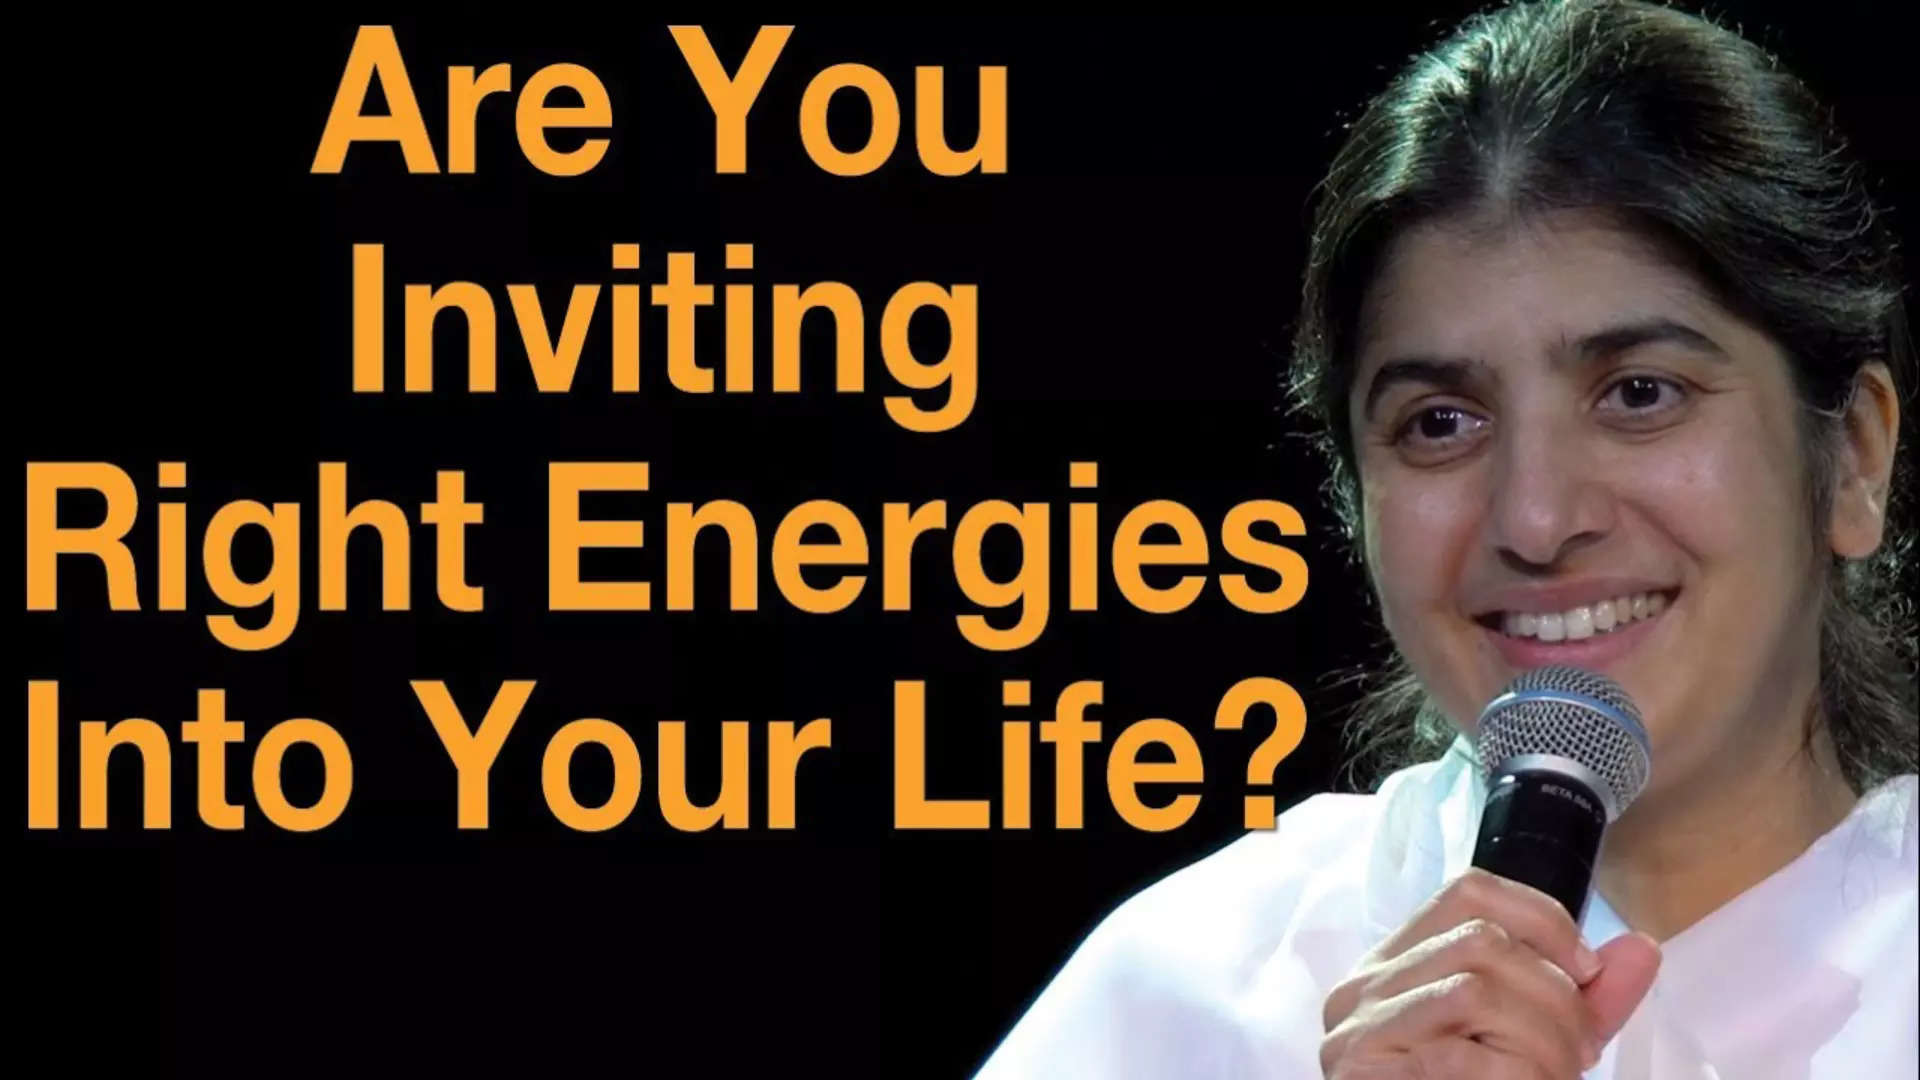 are-you-inviting-right-energies-into-your-life